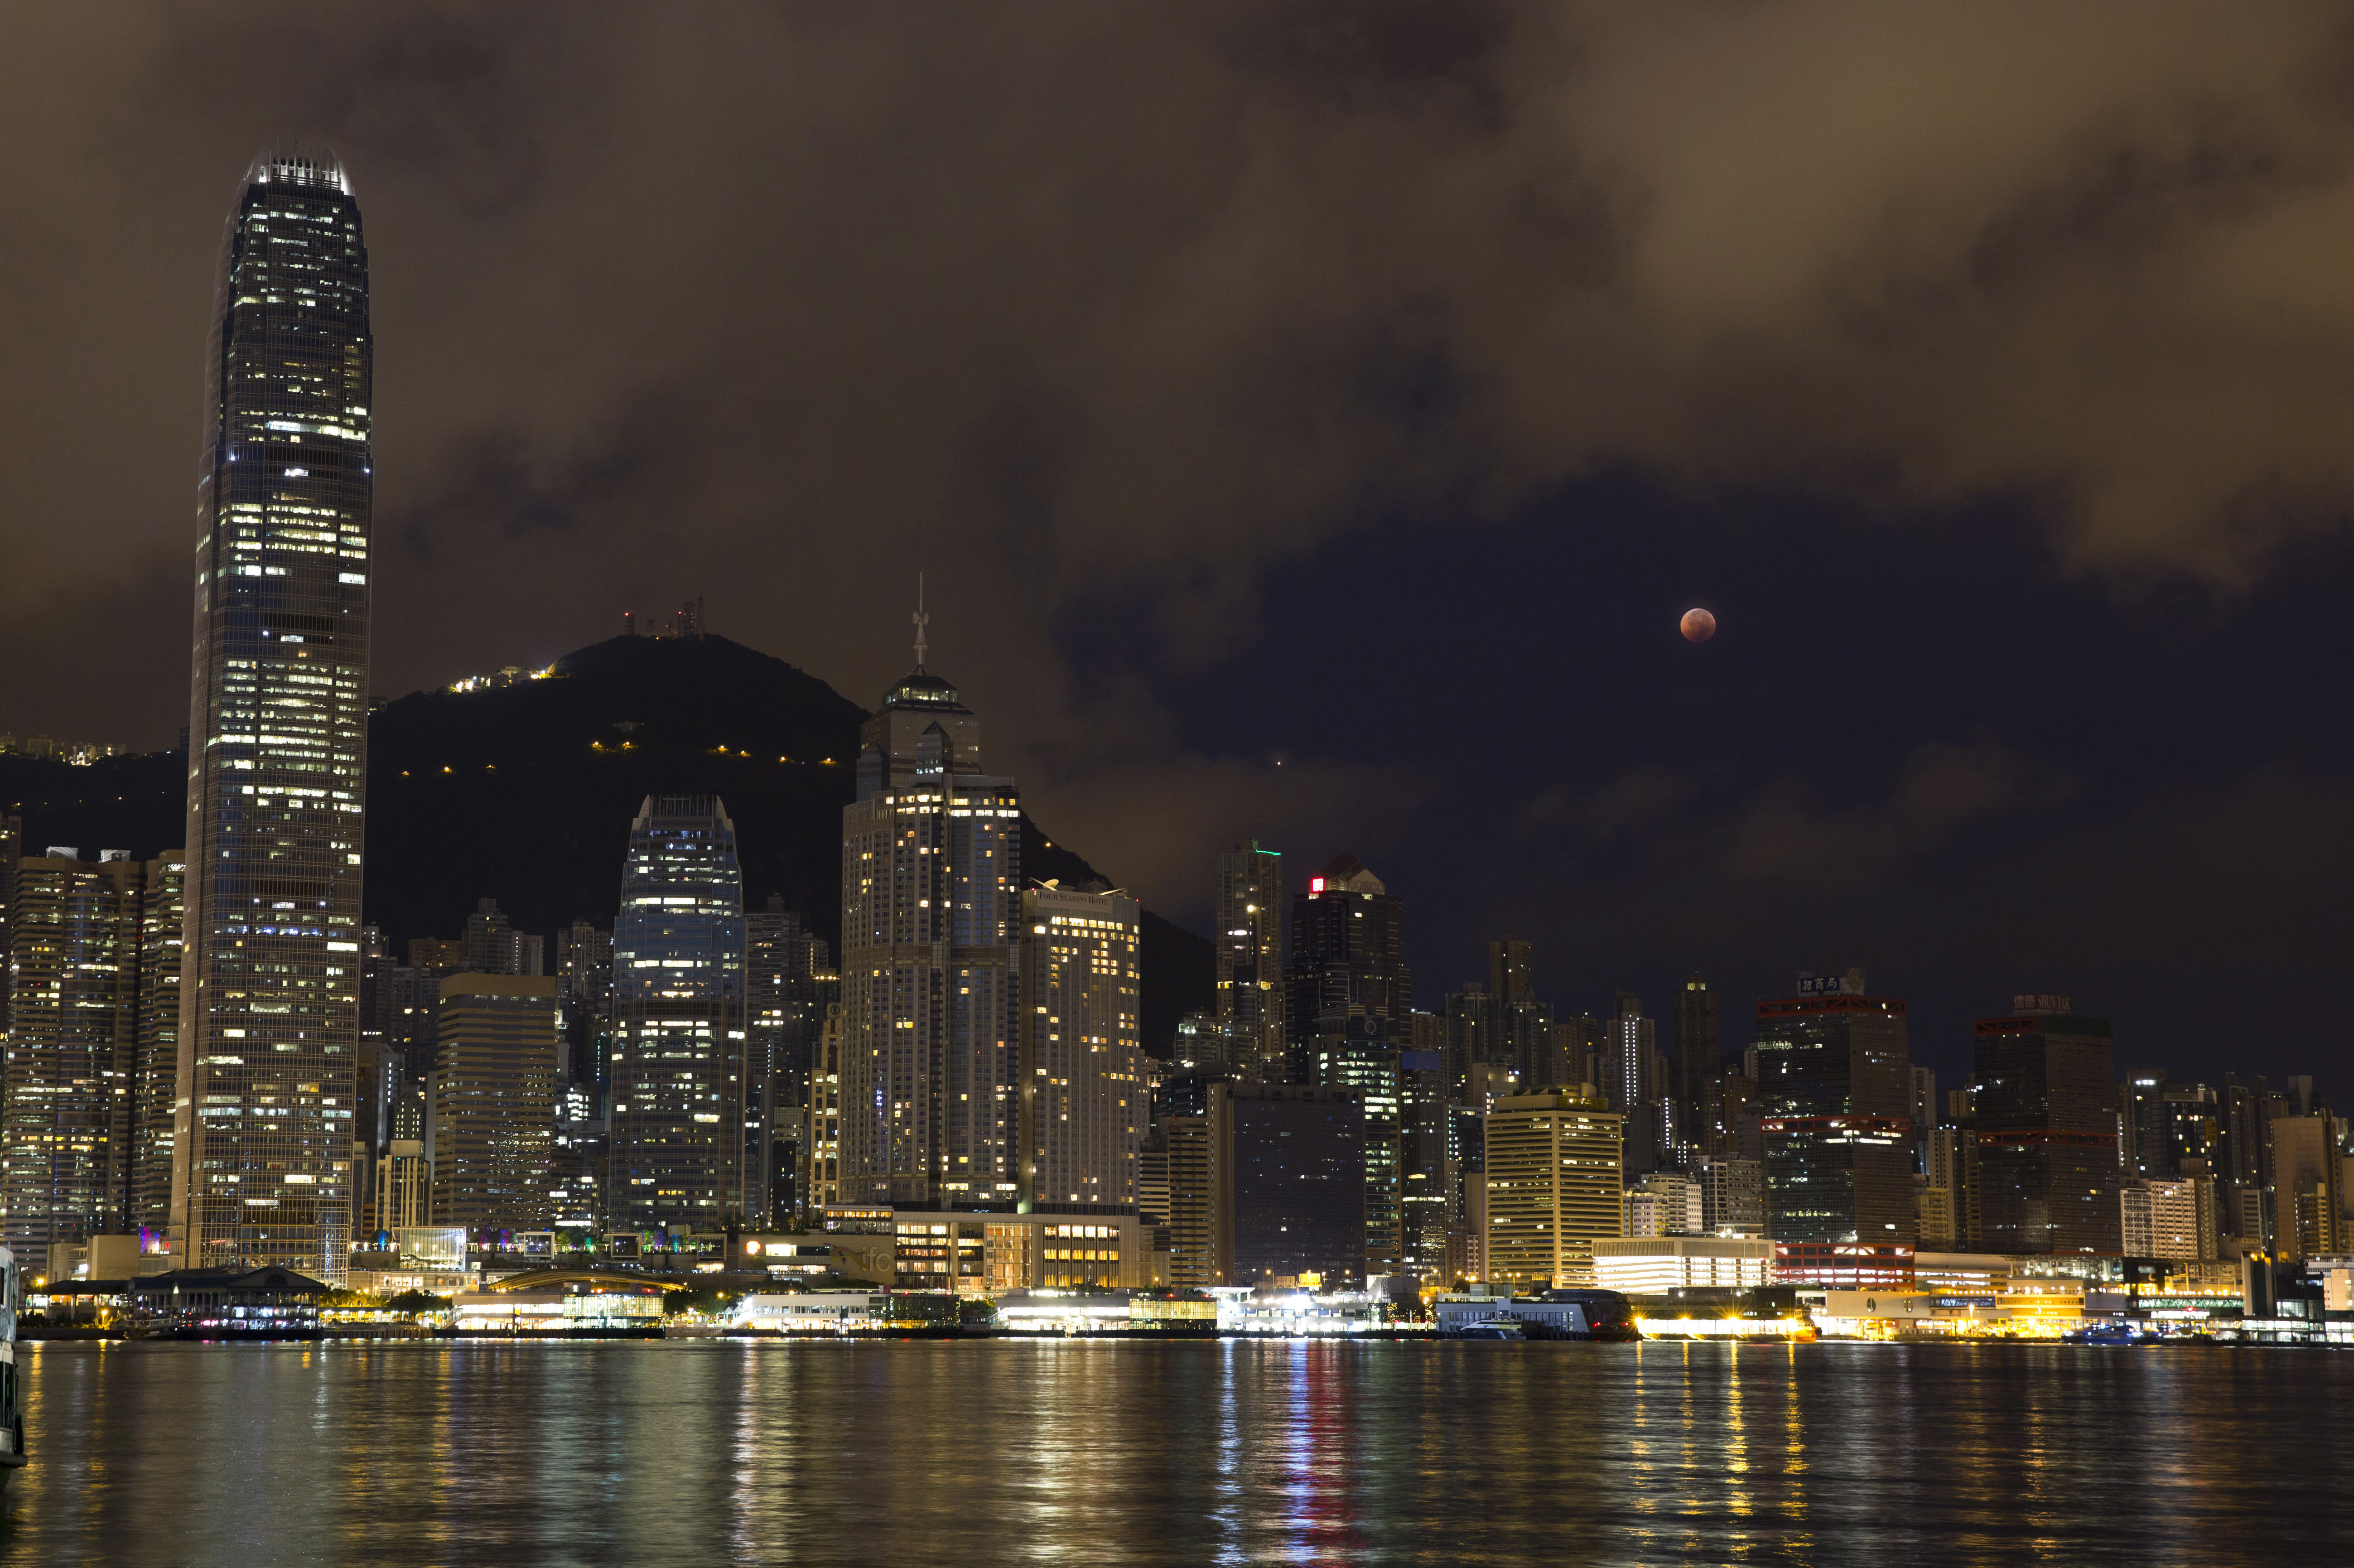 A full moon rises over the Victoria Harbour during a complete lunar eclipse, in Hong Kong, Saturday, July 28, 2018. Skywatchers around much of the world are looking forward to a complete lunar eclipse that will be the longest this century.